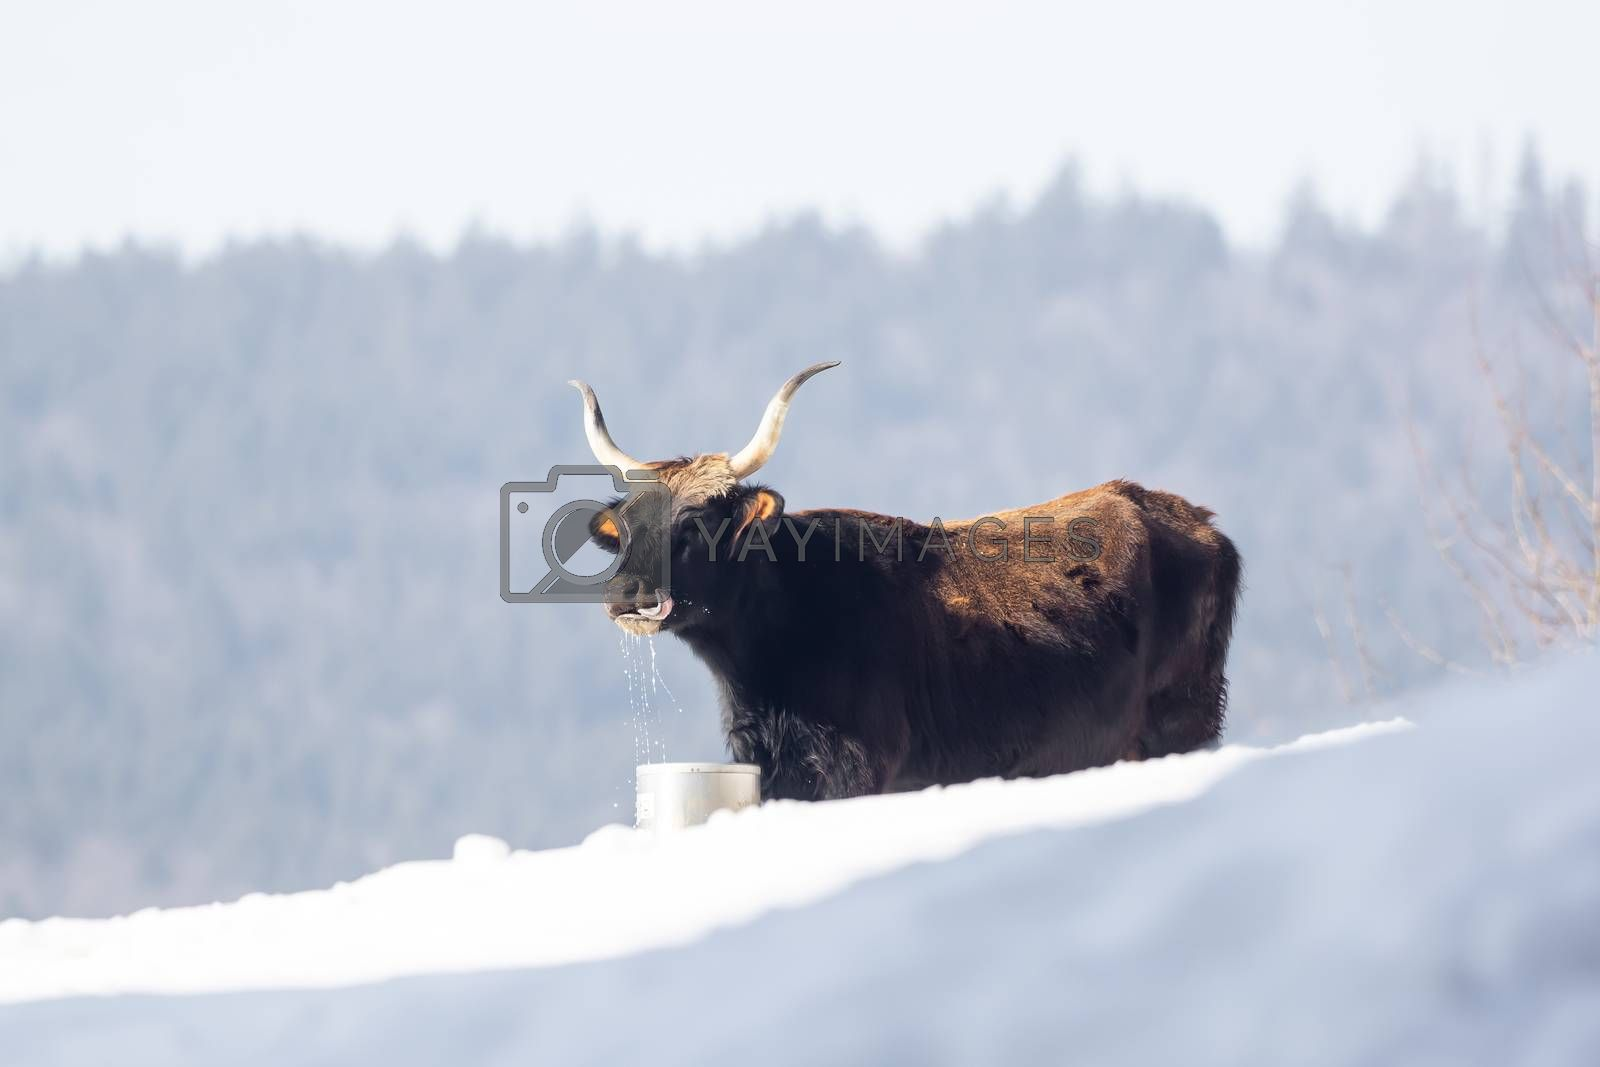 One except bullock is drinking water from a bucket in the snow by Sandra Fotodesign